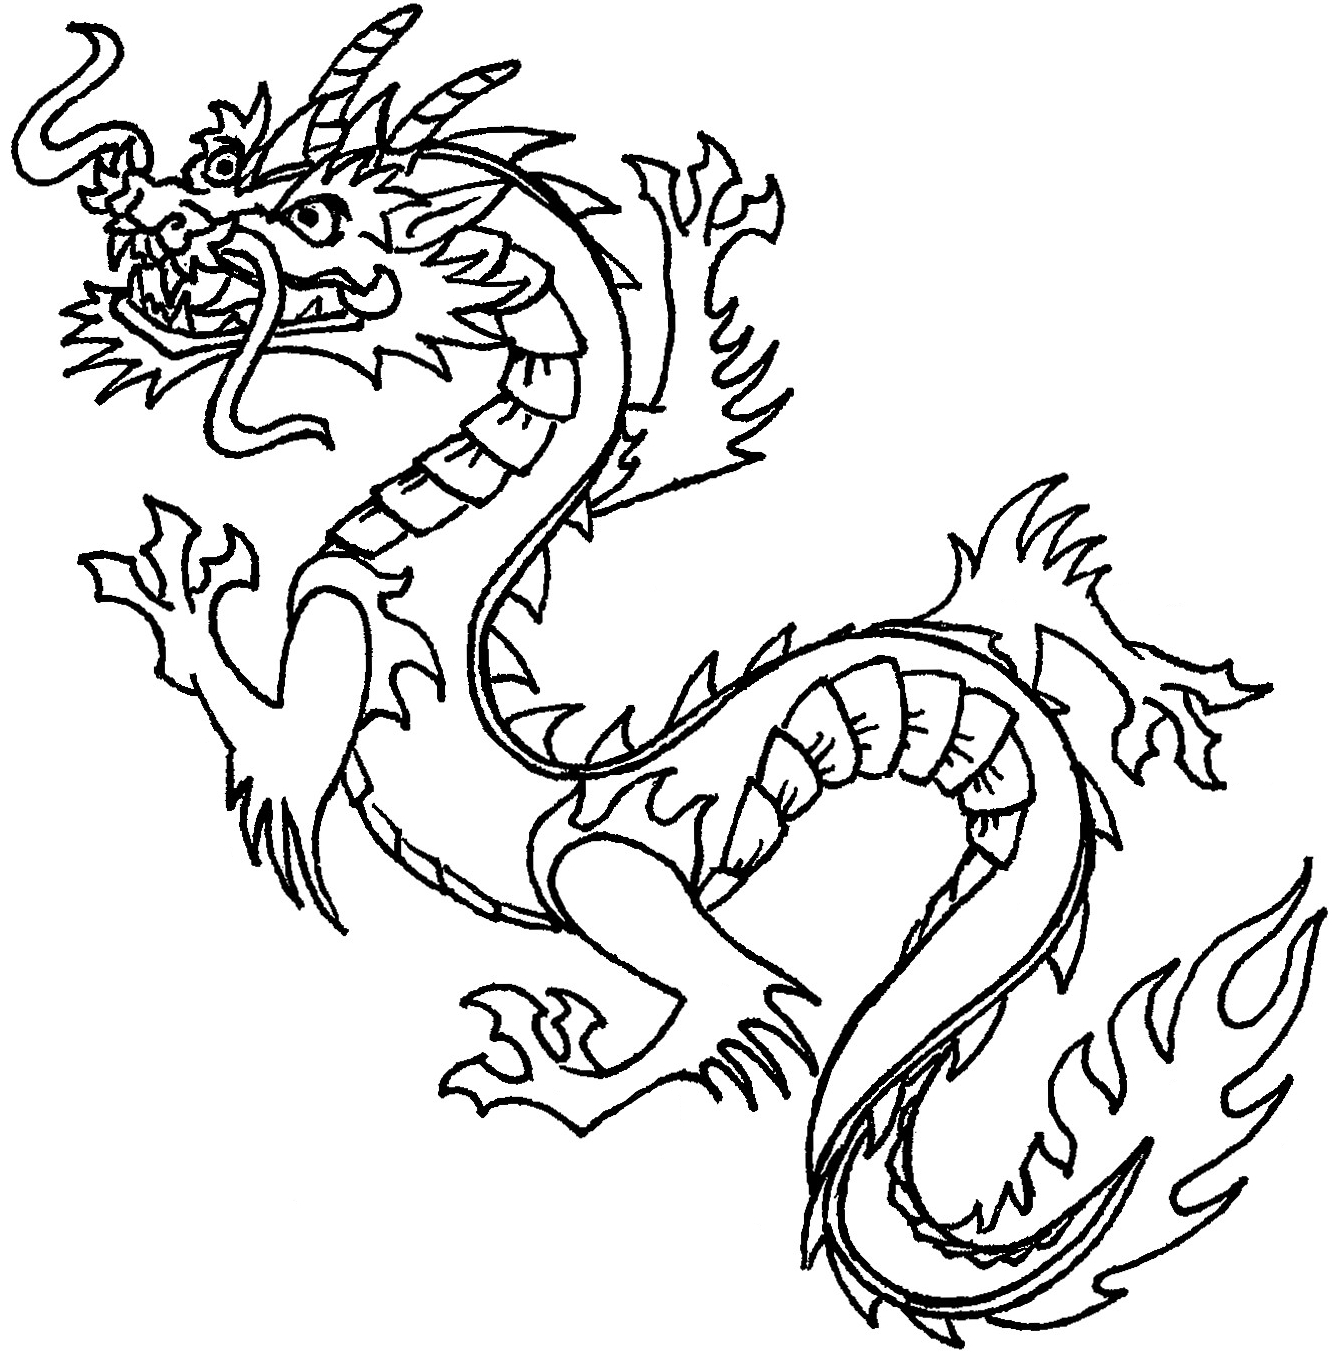 chinese dragon coloring page chinese dragon coloring pages coloring pages to download coloring page chinese dragon